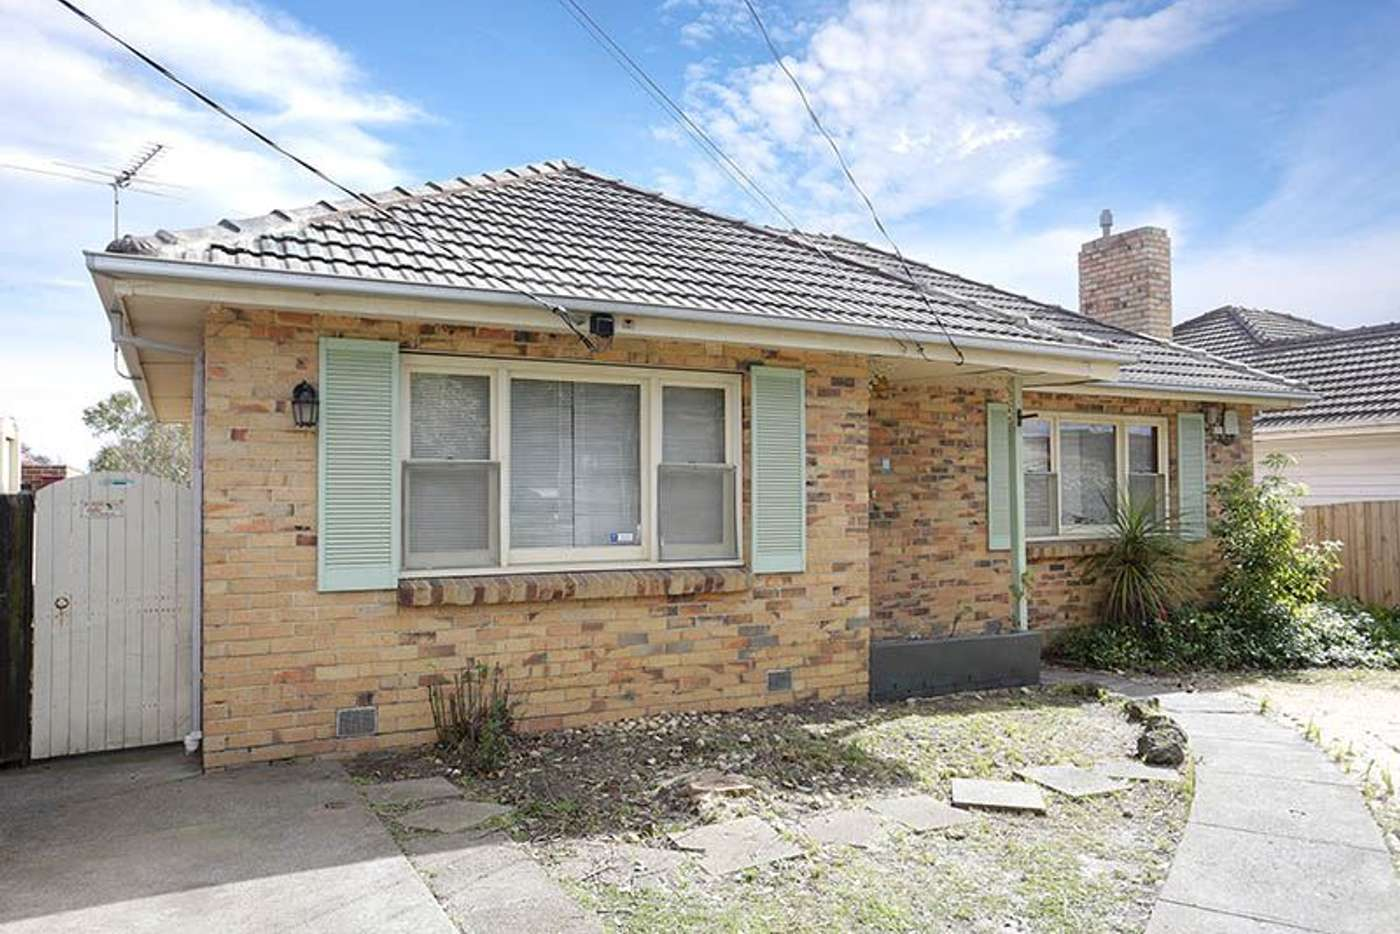 Main view of Homely house listing, 45 Panoramic Grove, Glen Waverley VIC 3150